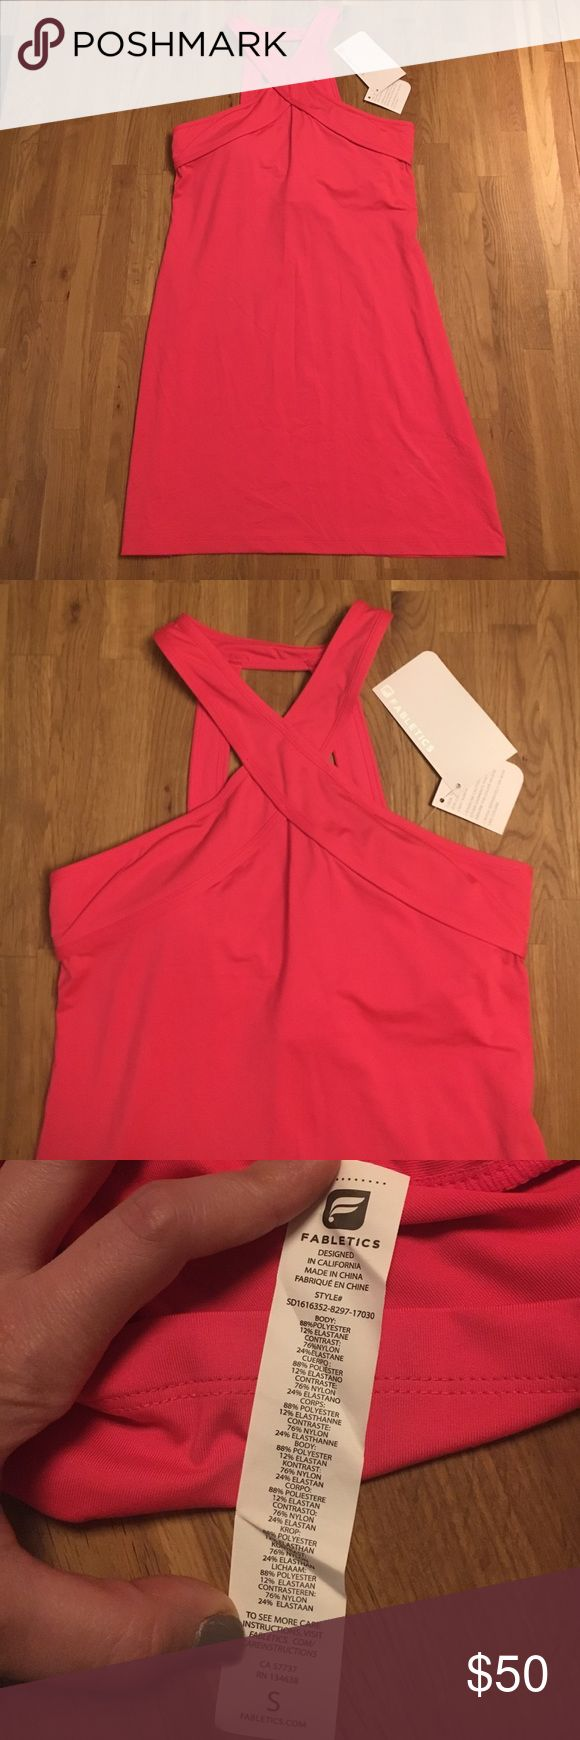 Fabletics Hot Pink Athletic Dress NWT Size Small New with tags hot pink Fabletics dress. Size Small. Fabletics Dresses